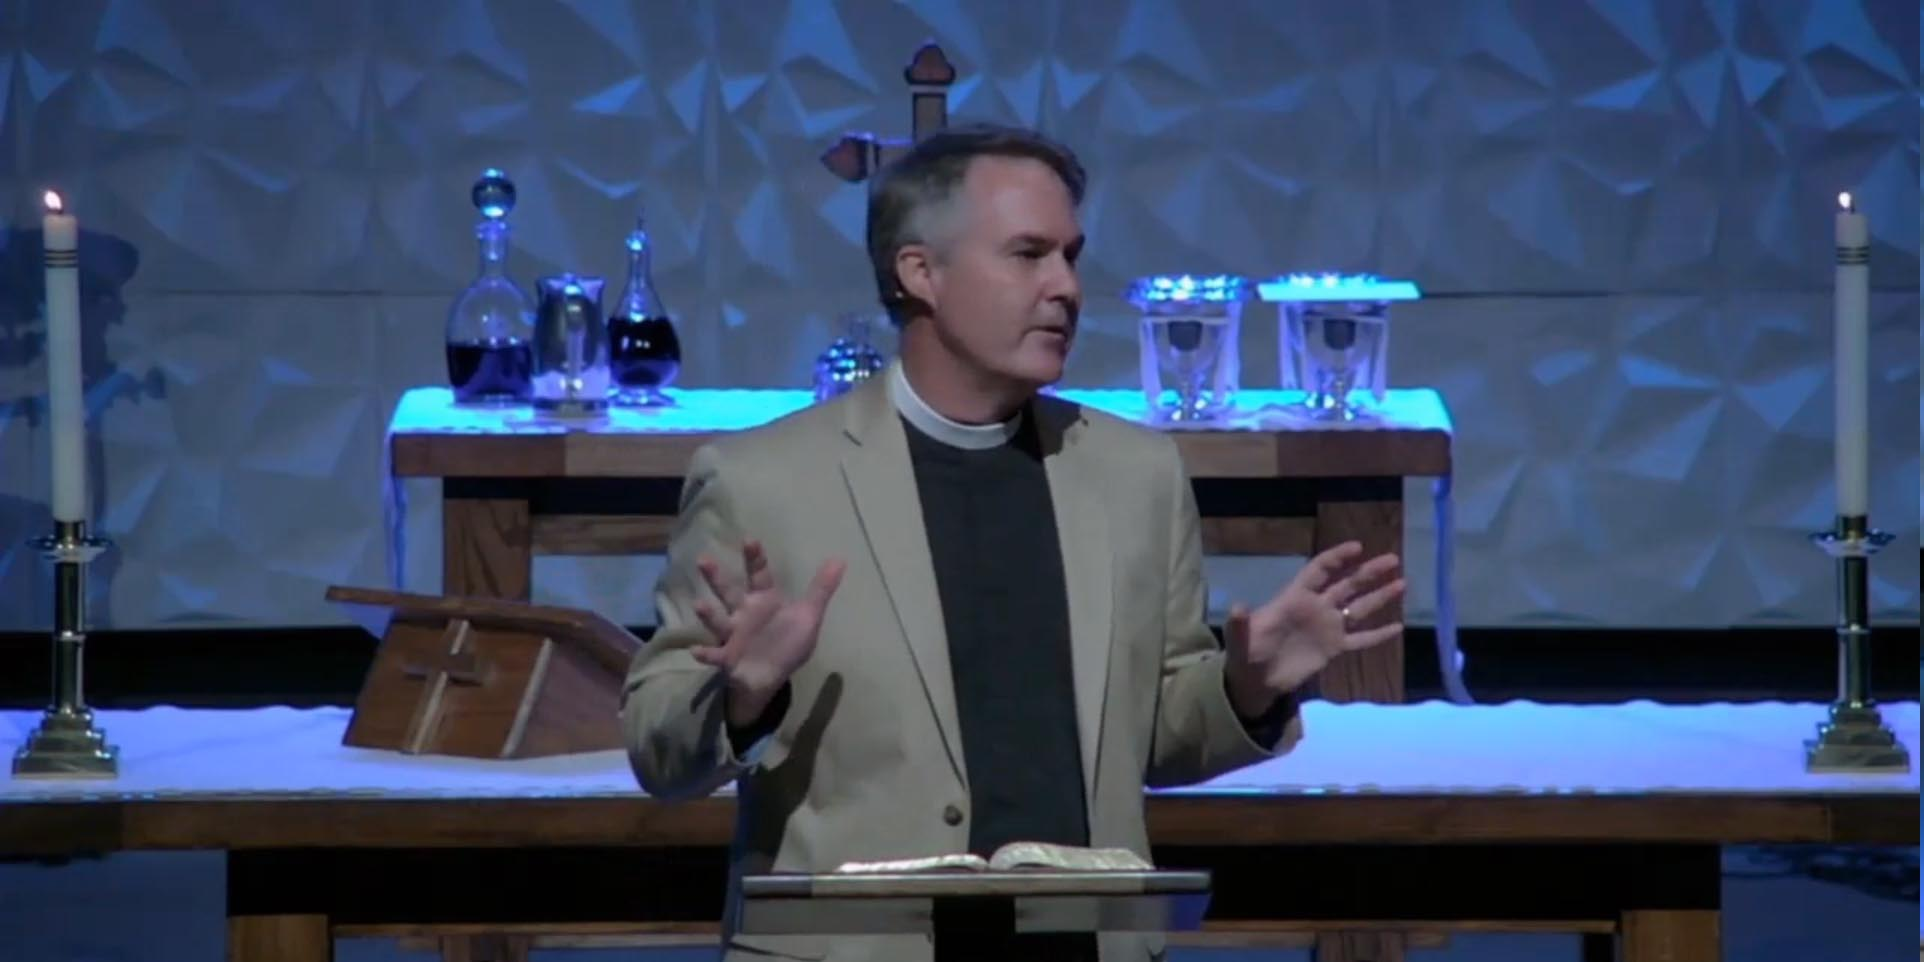 The Mystery Revealed - Sermon by Charlie Holt